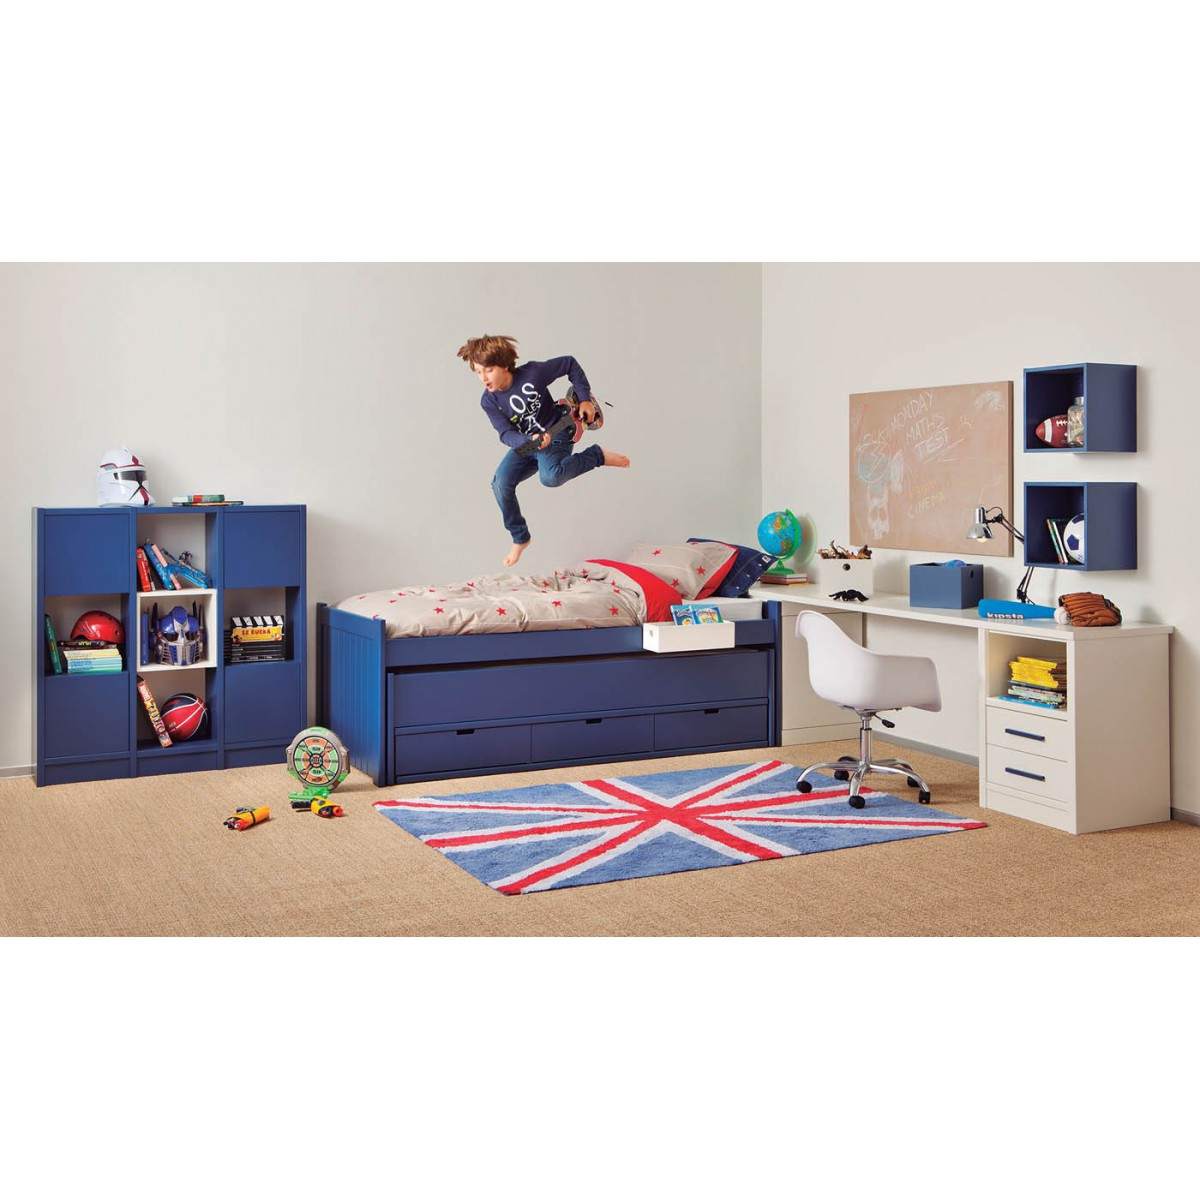 gallery of chambre enfant de qualite avec lit double bureau pour chambre garcon with chambre. Black Bedroom Furniture Sets. Home Design Ideas